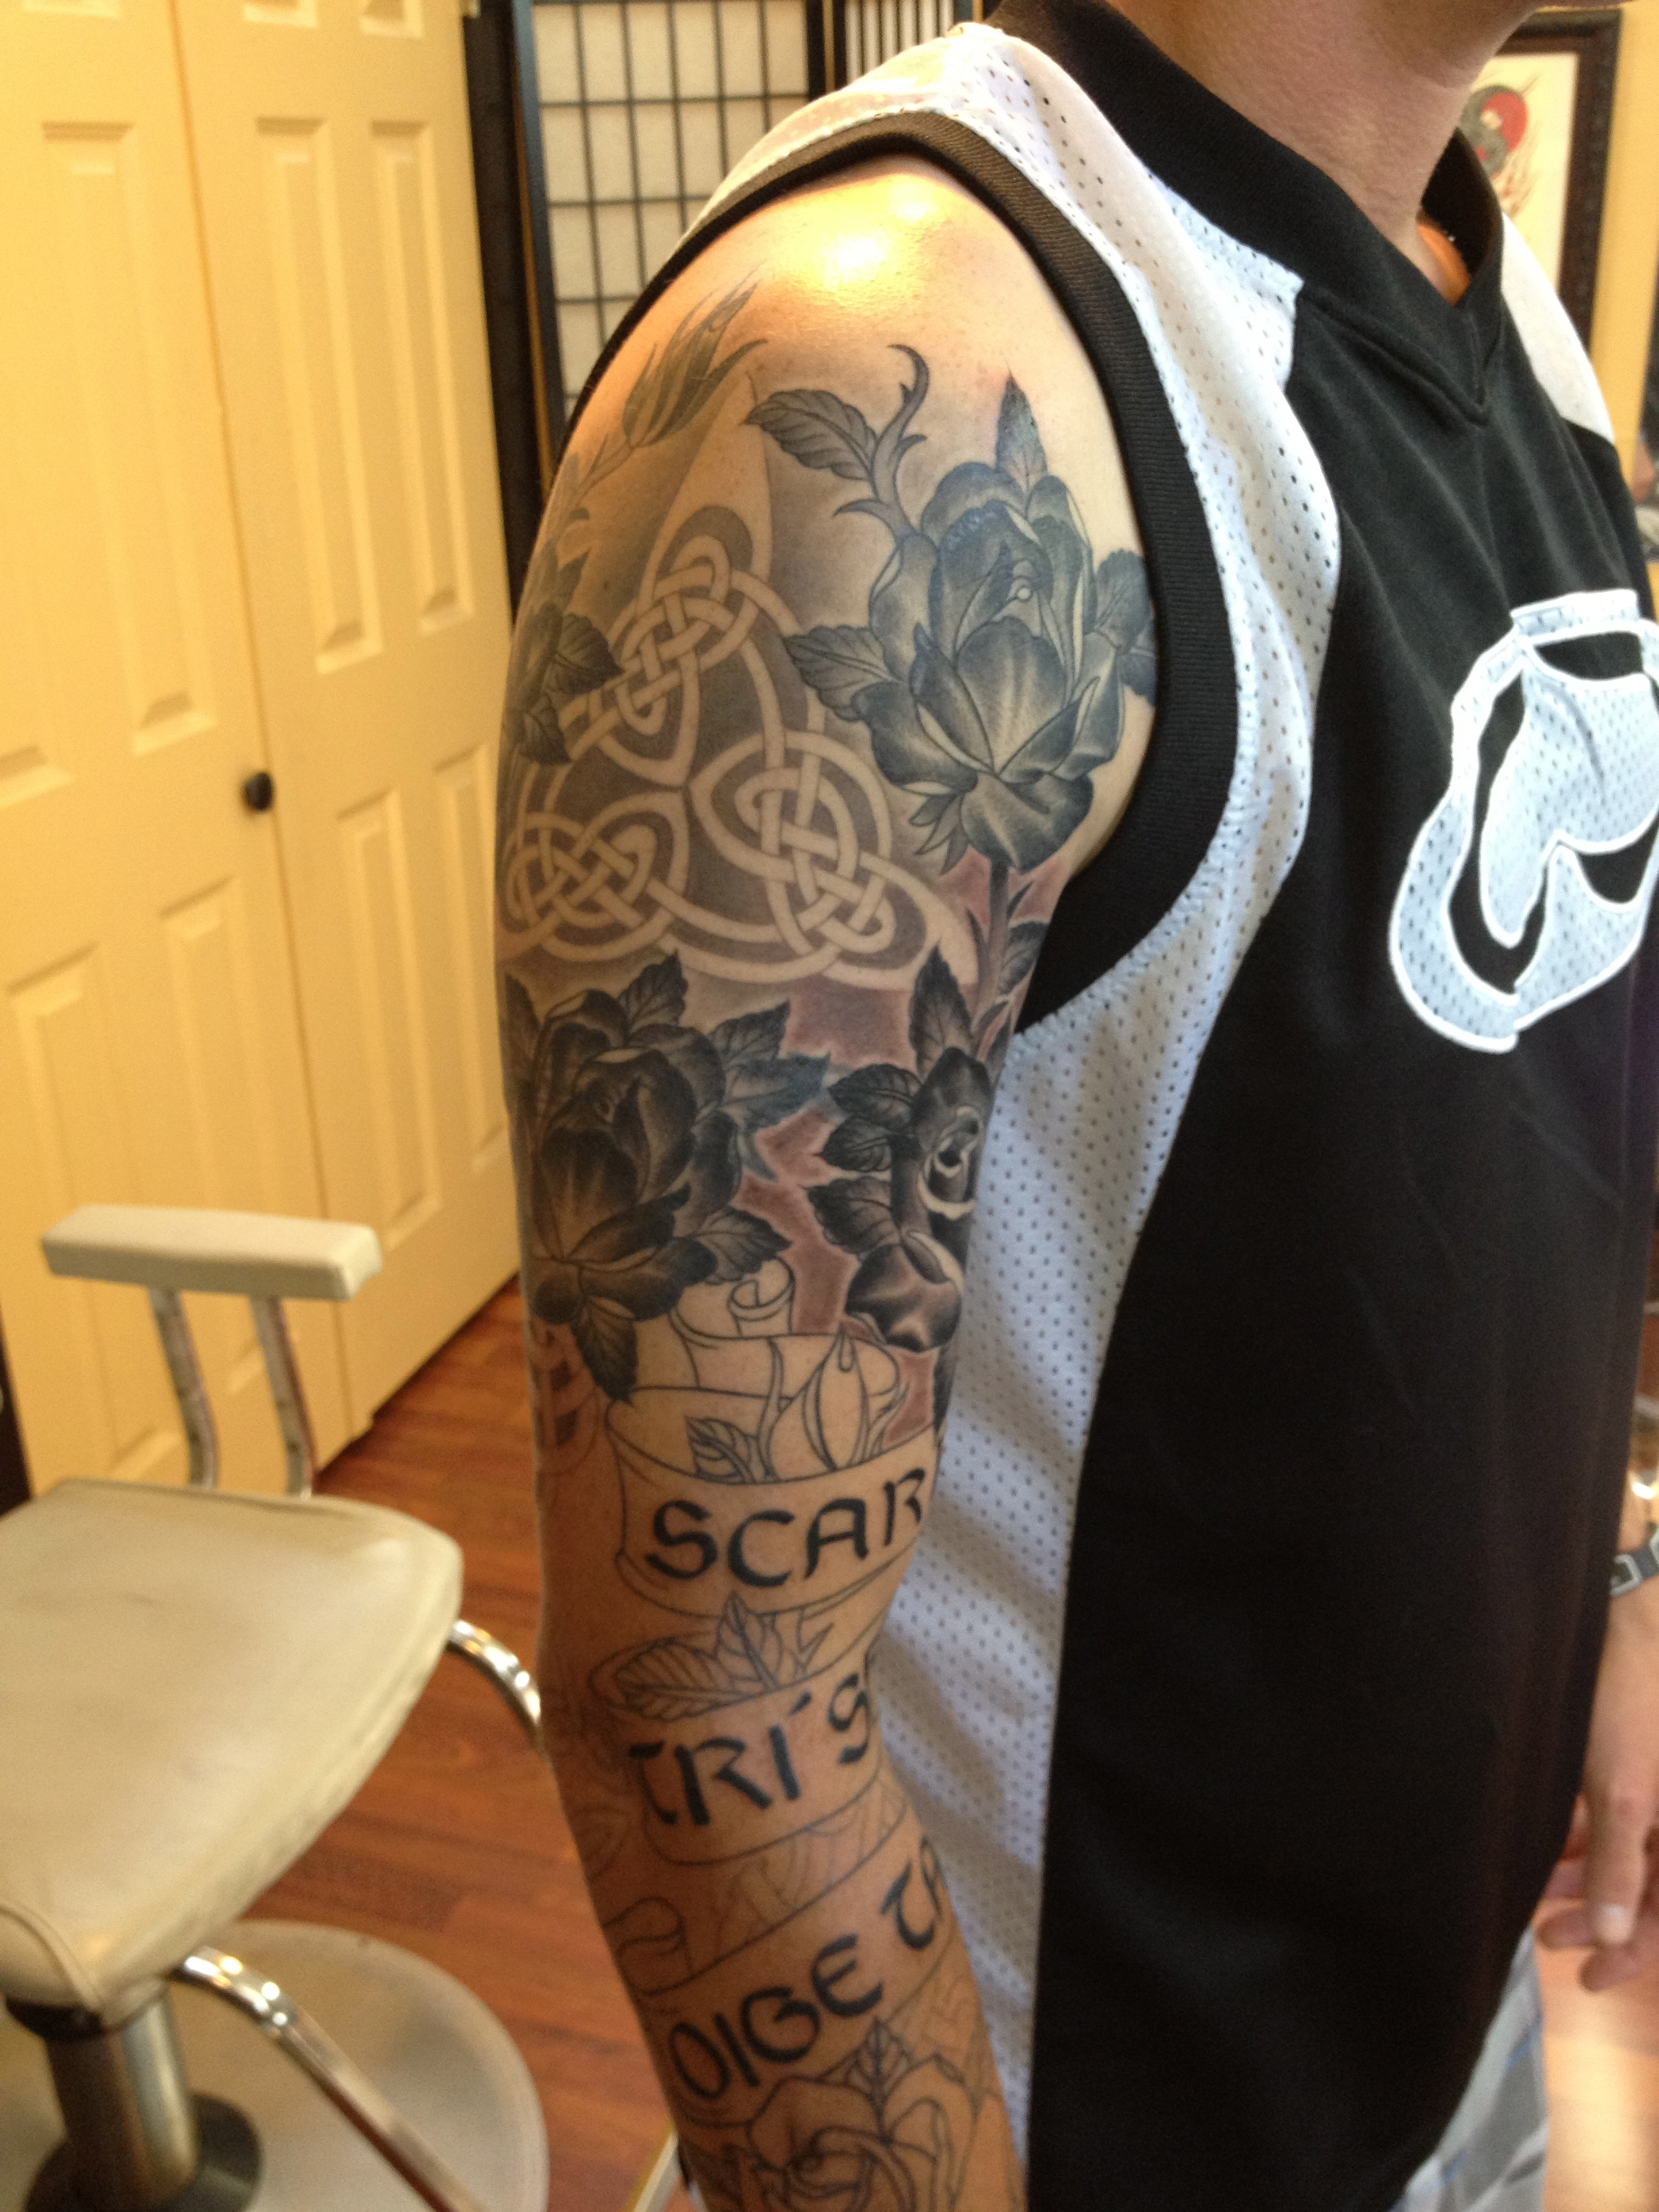 pics for gt celtic warrior sleeve tattoo